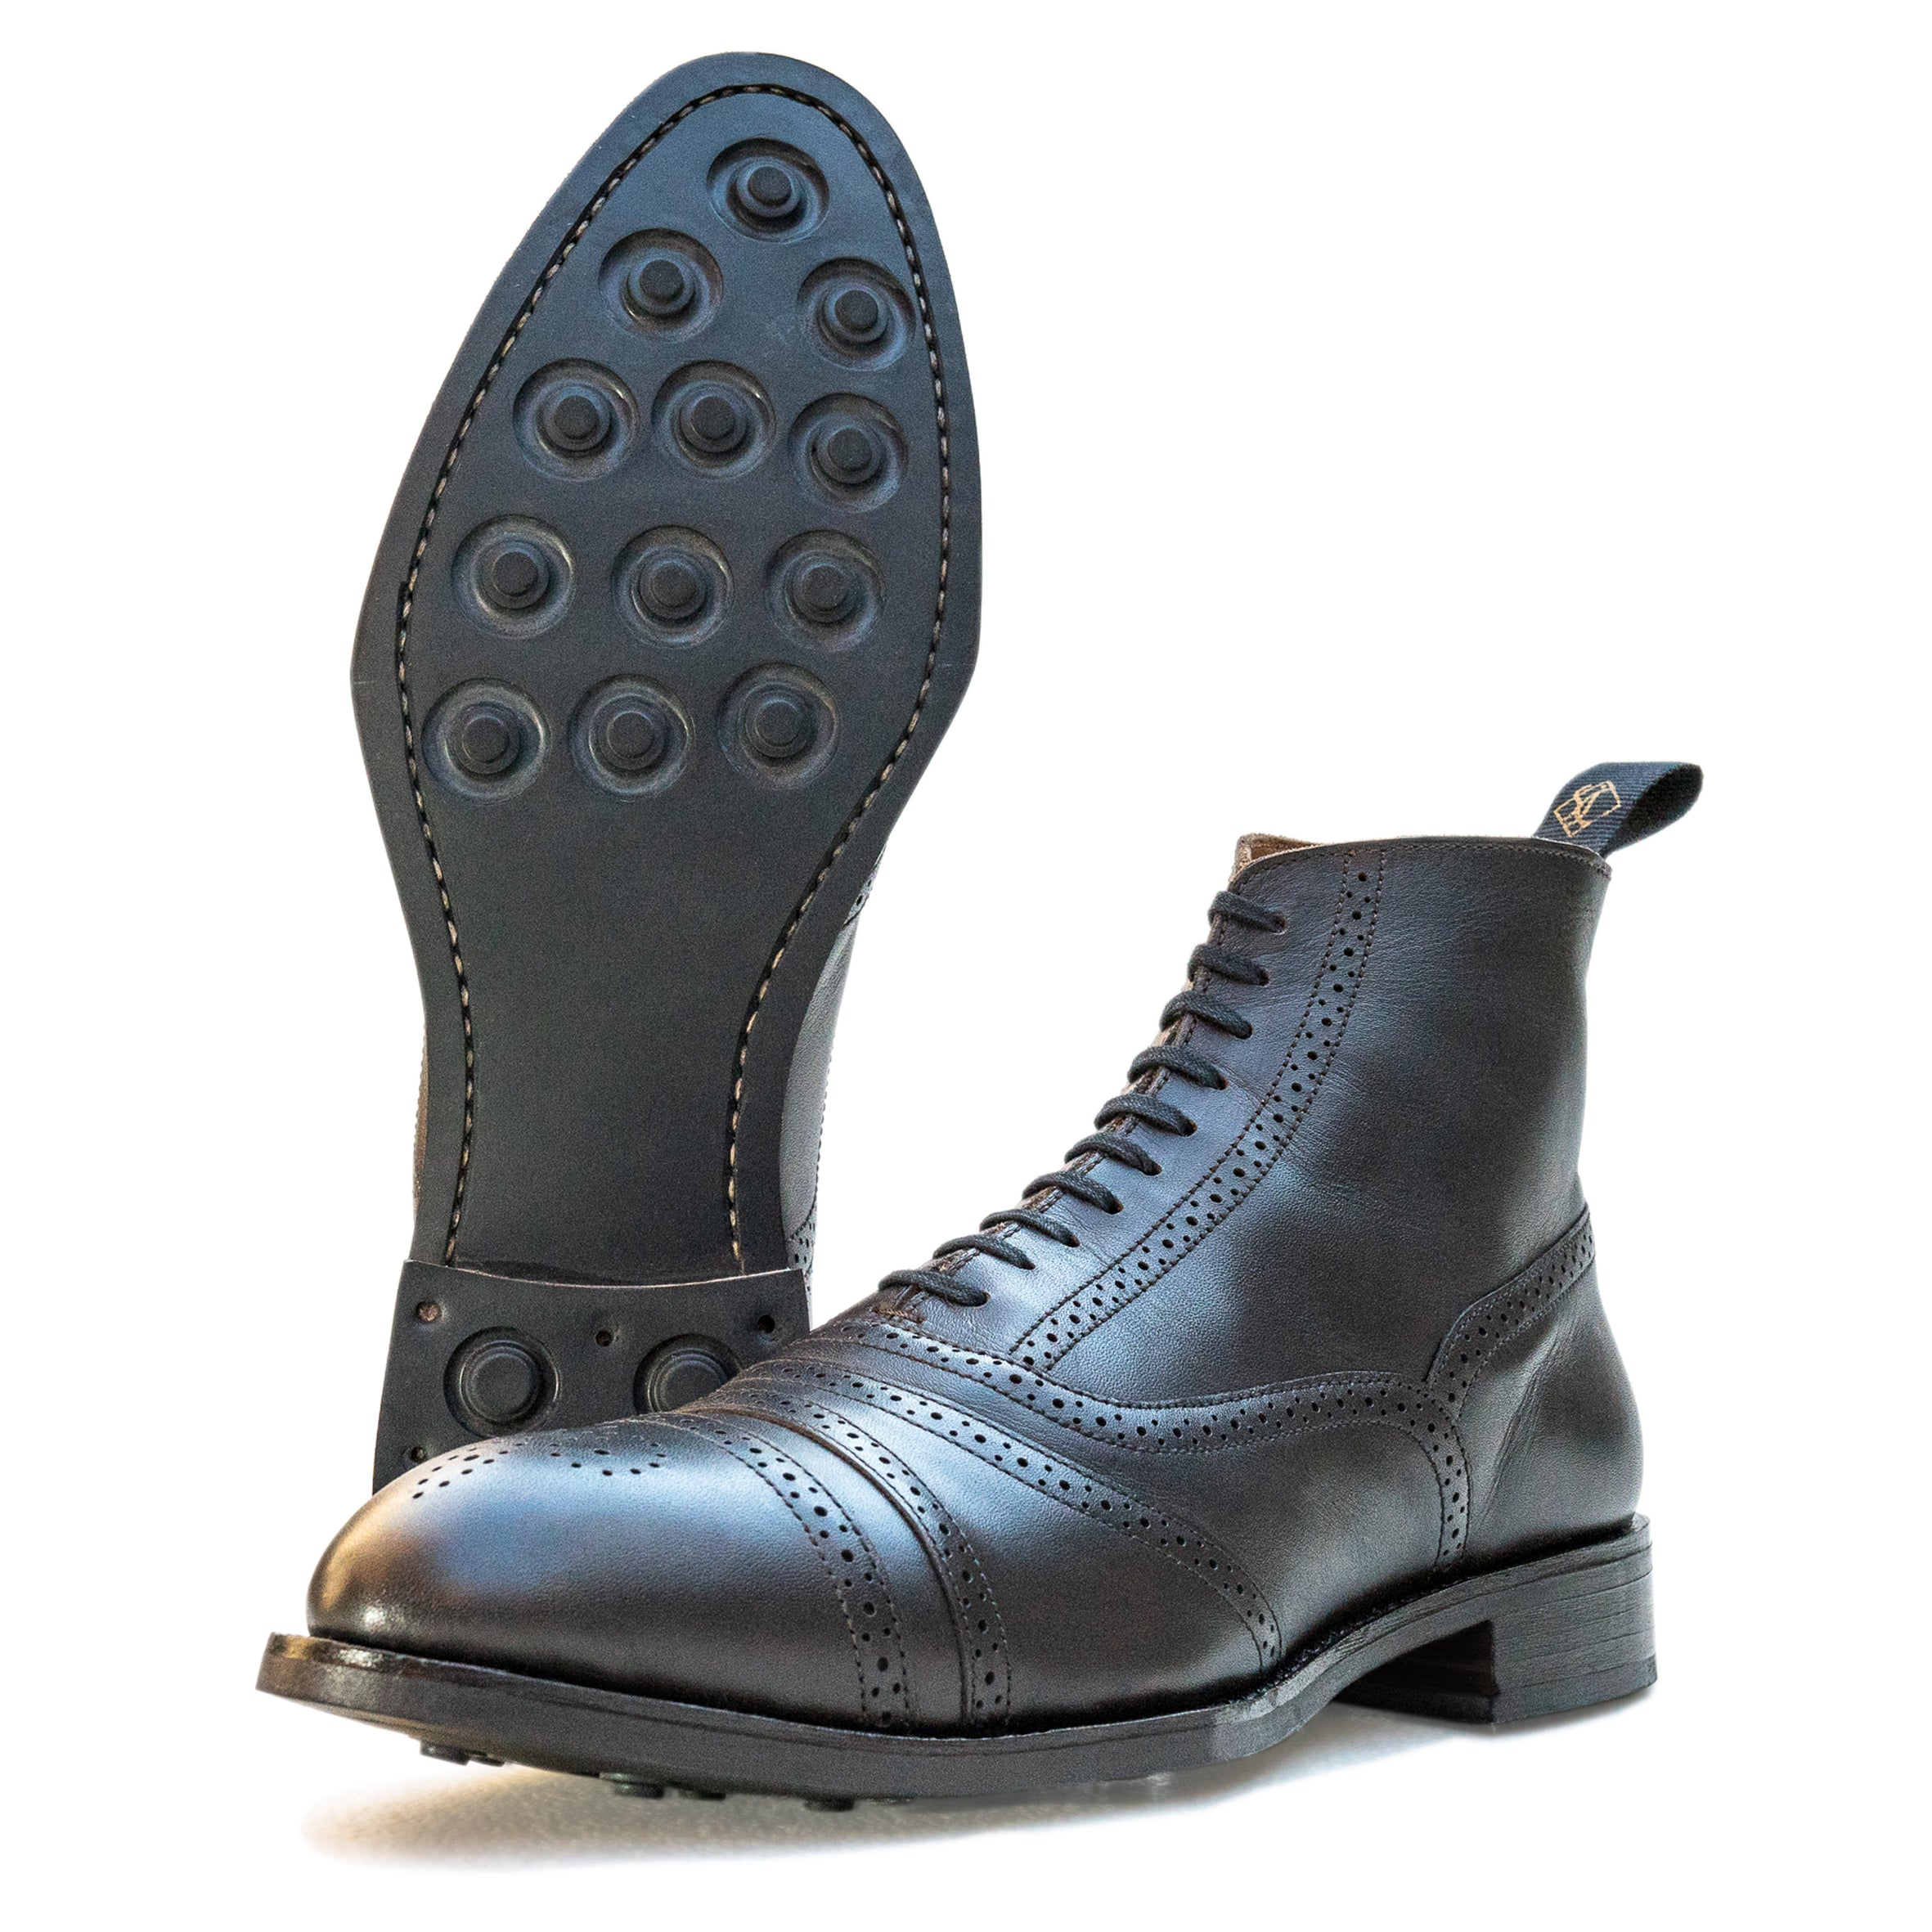 black balmoral boot sole and side